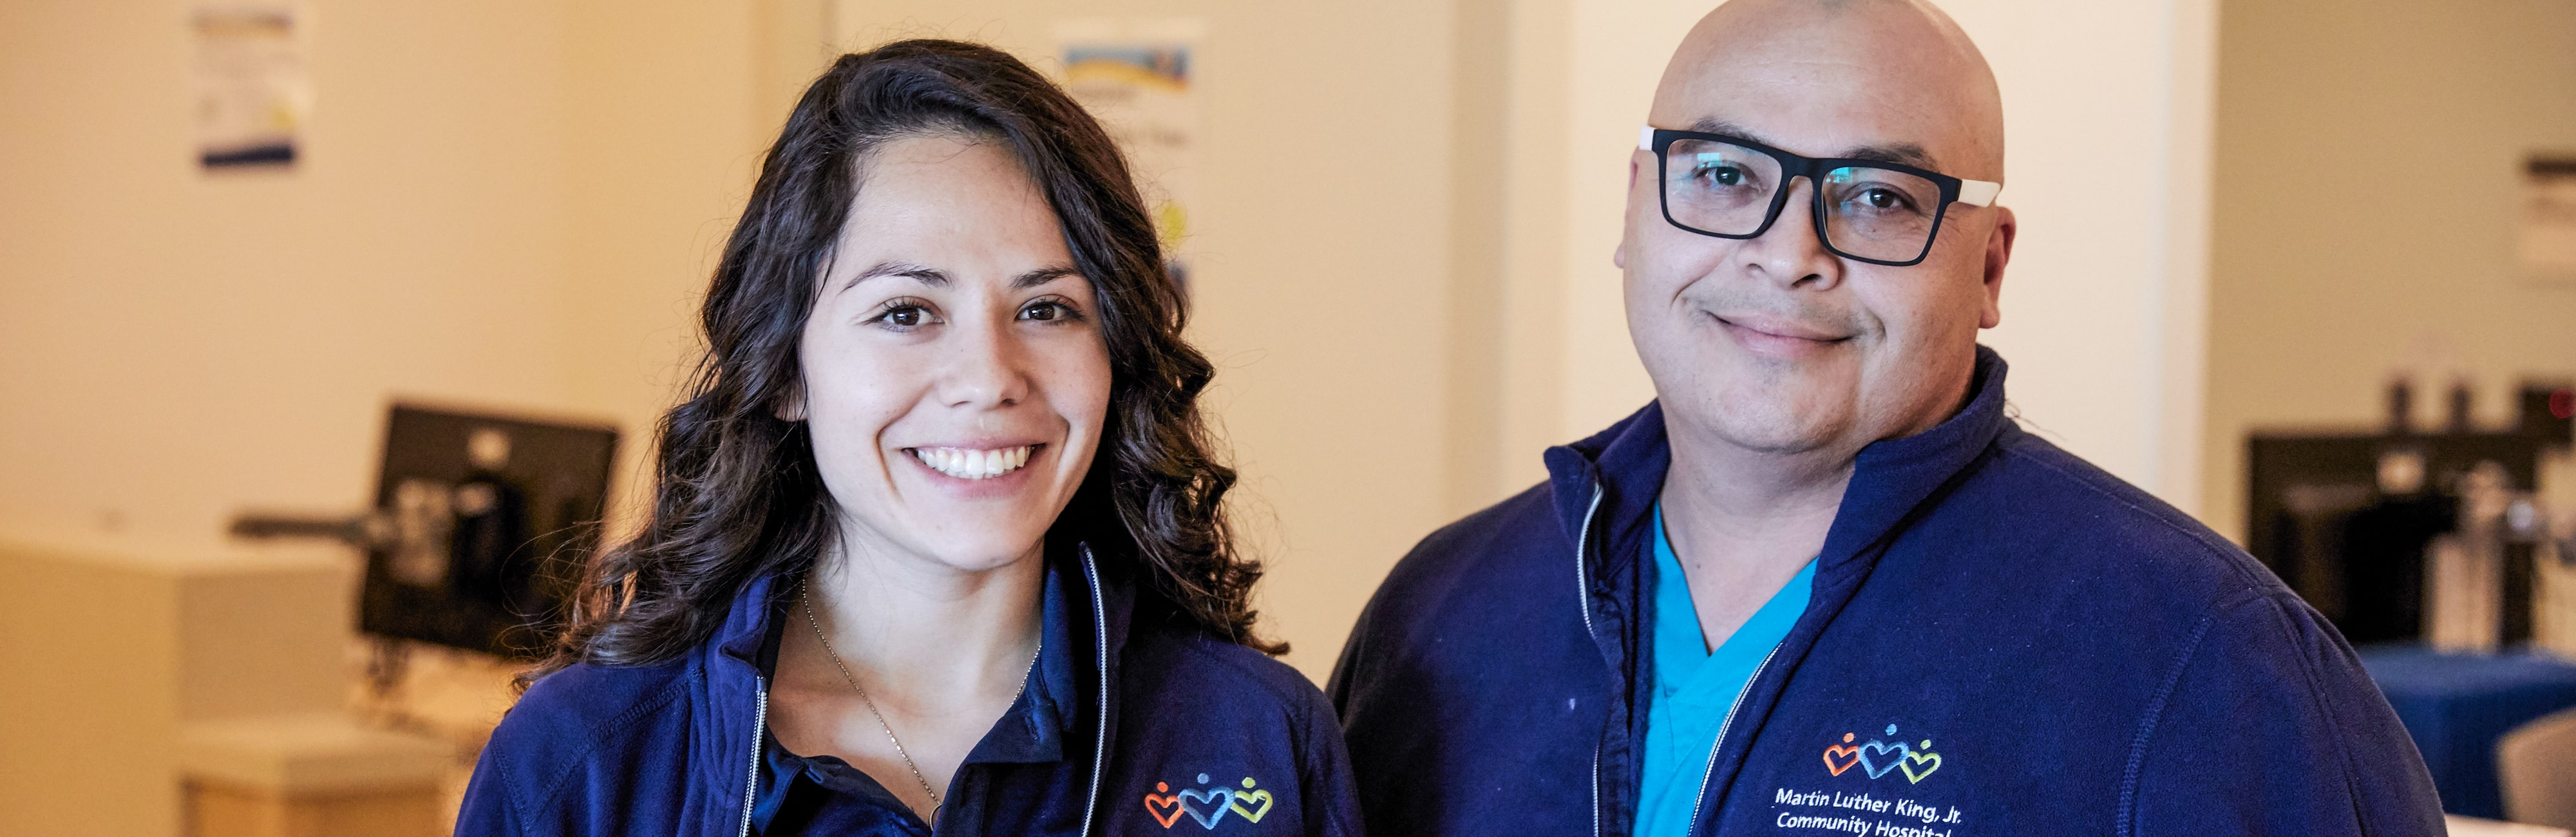 Two Latino hospital volunteers smiling